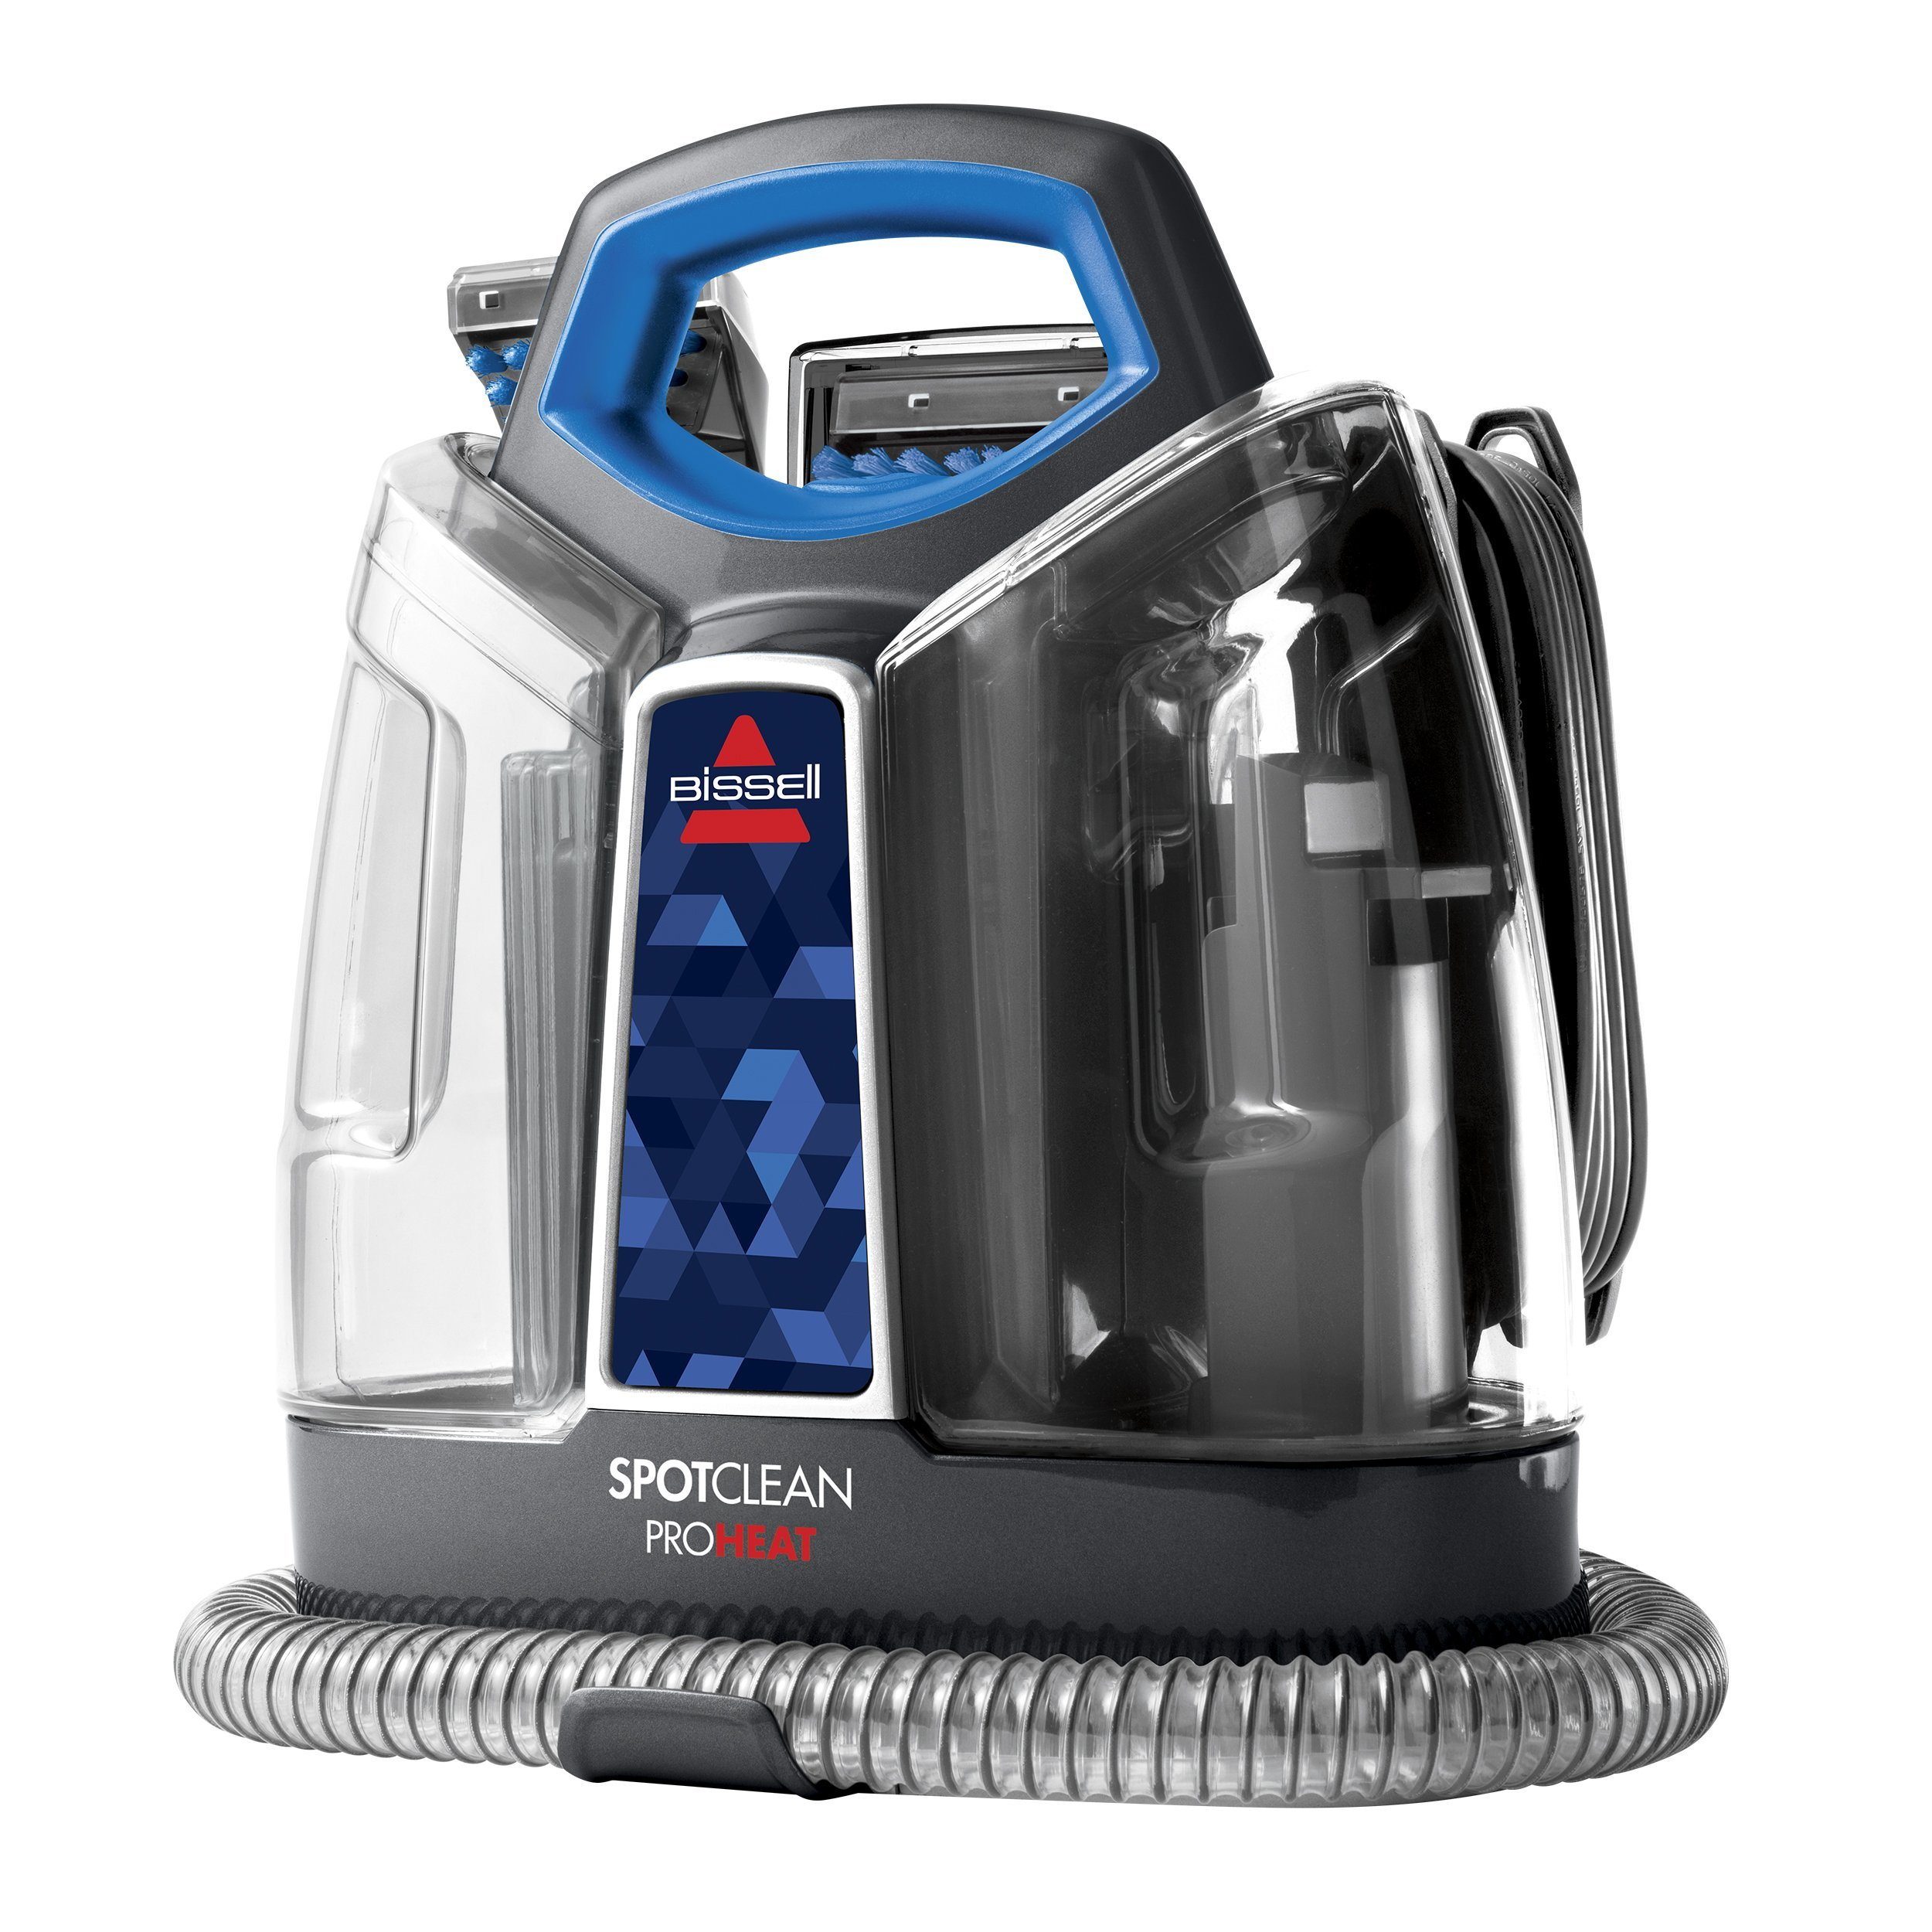 BISSELL SpotClean ProHeat 5207N Portable Deep Cleaner, Blue by Bissell